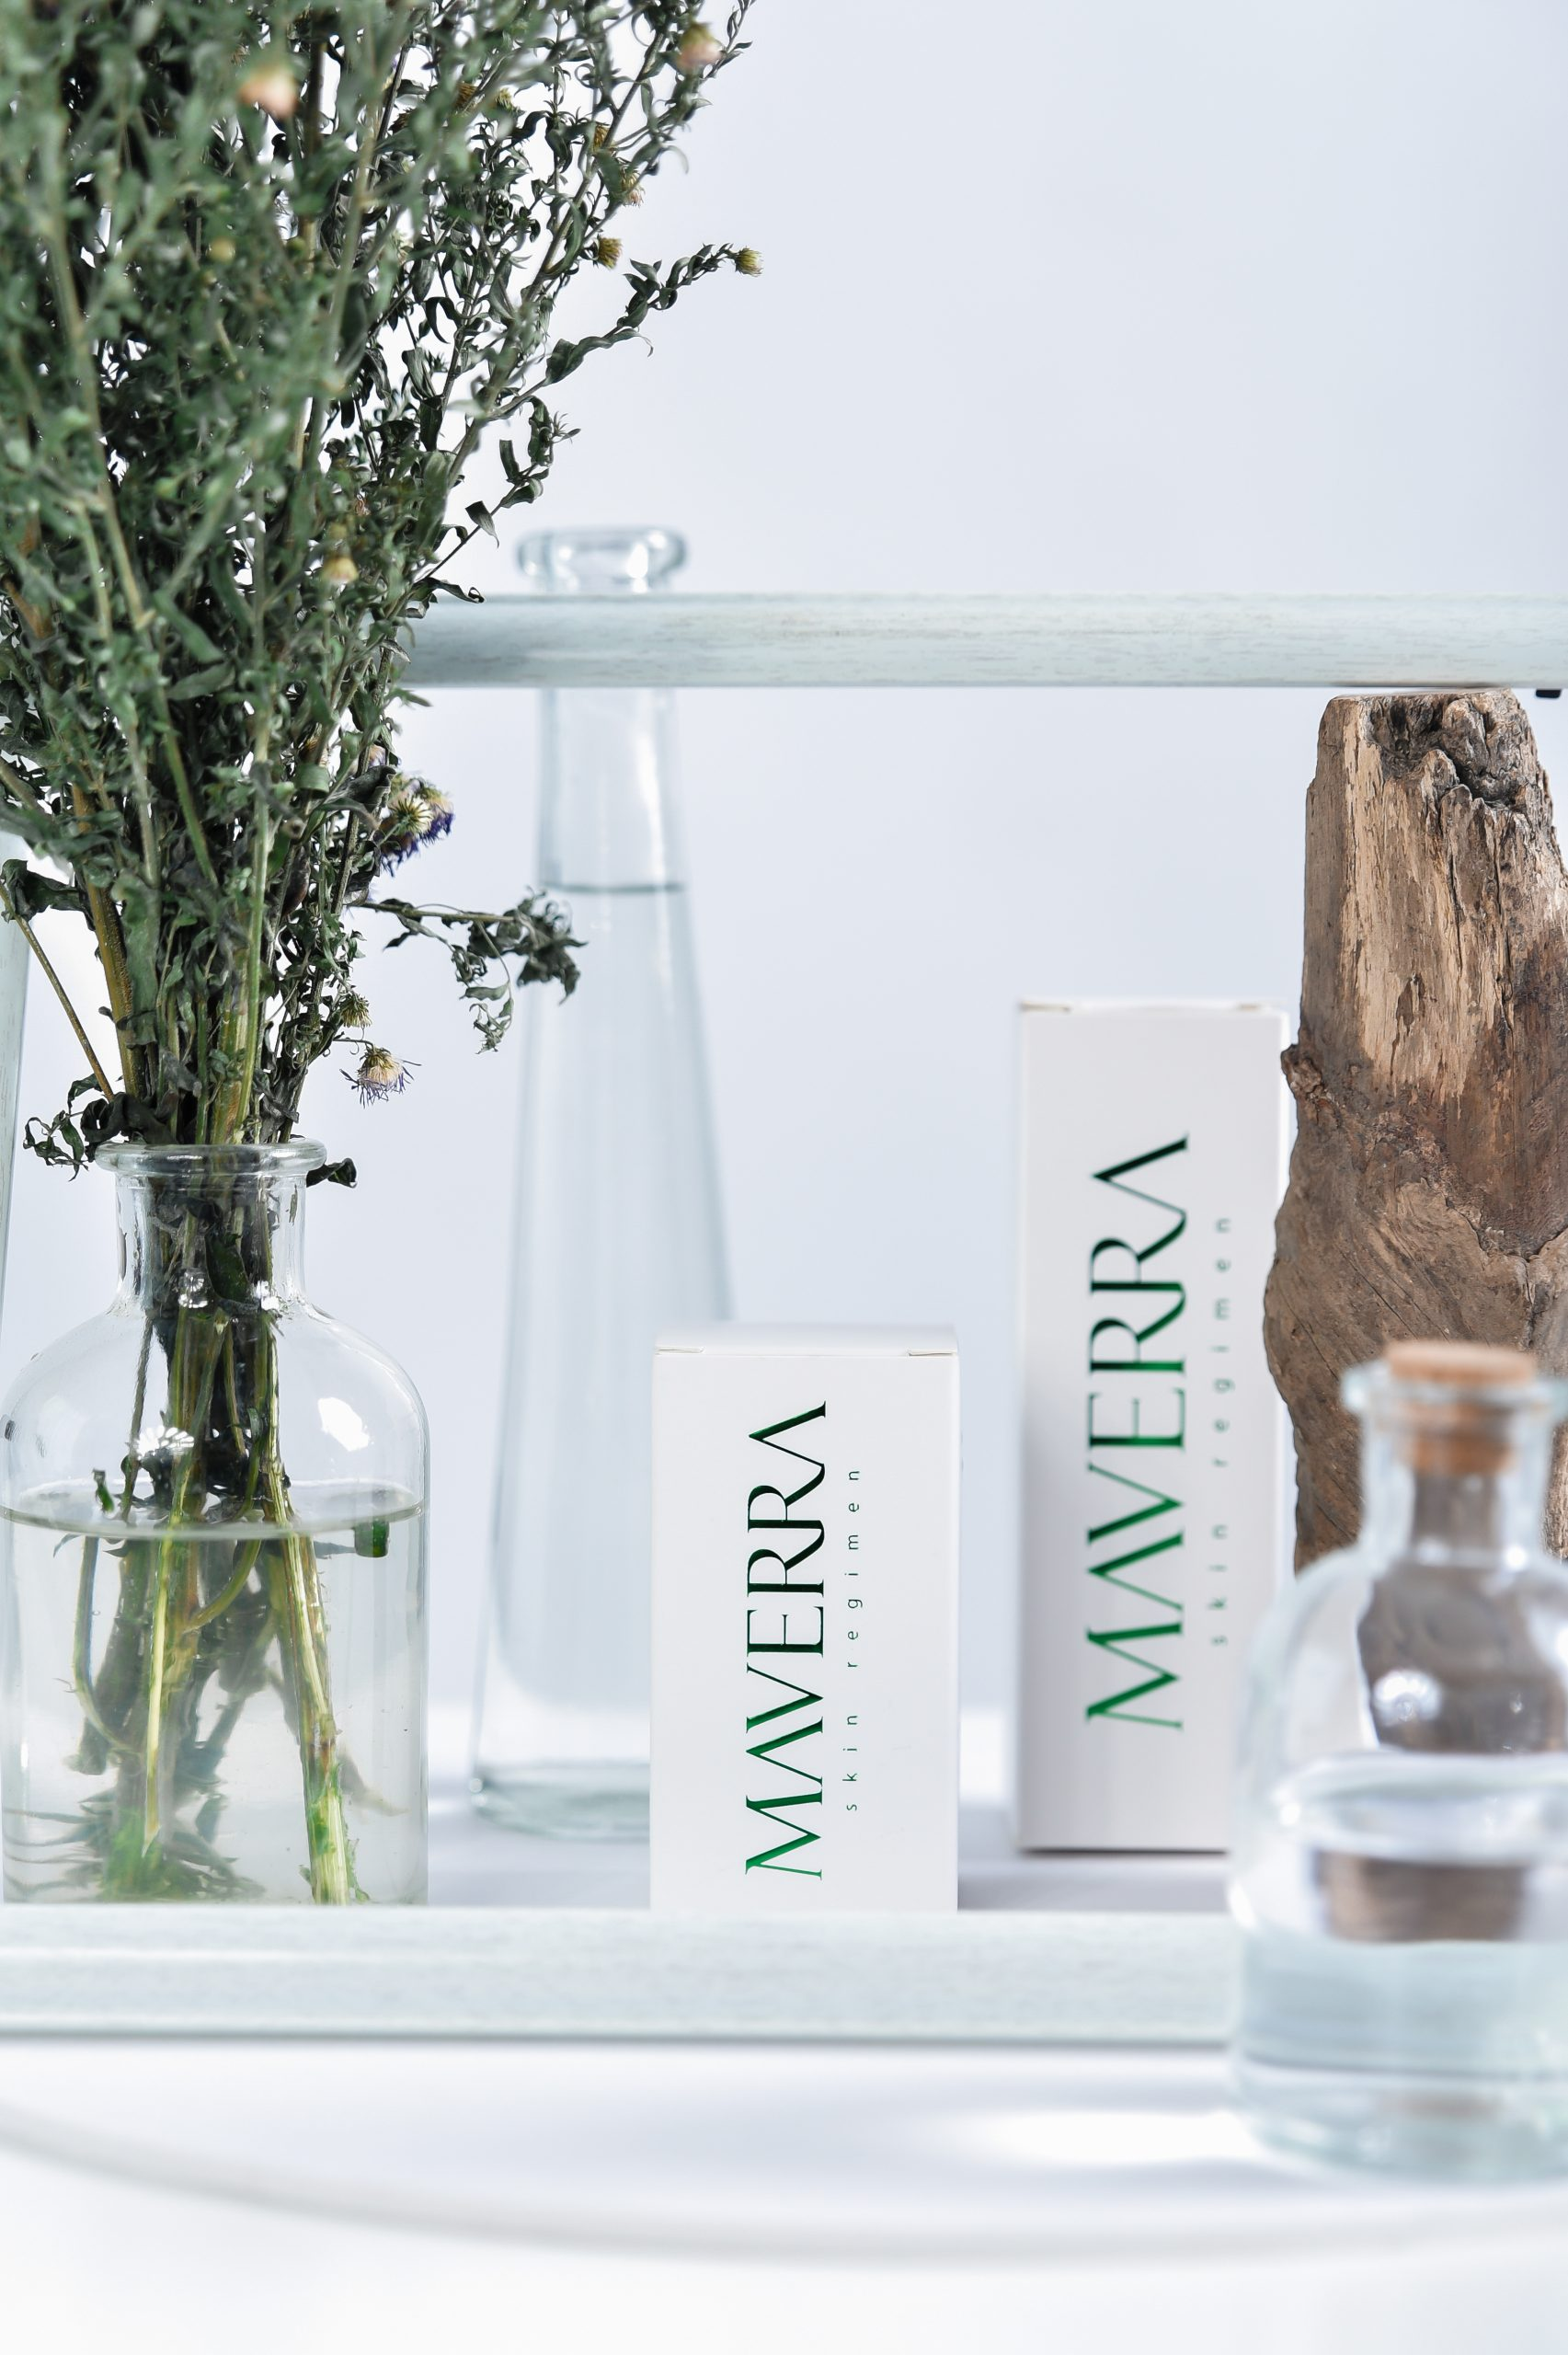 Product Photo Shooting For Maverra 6 scaled